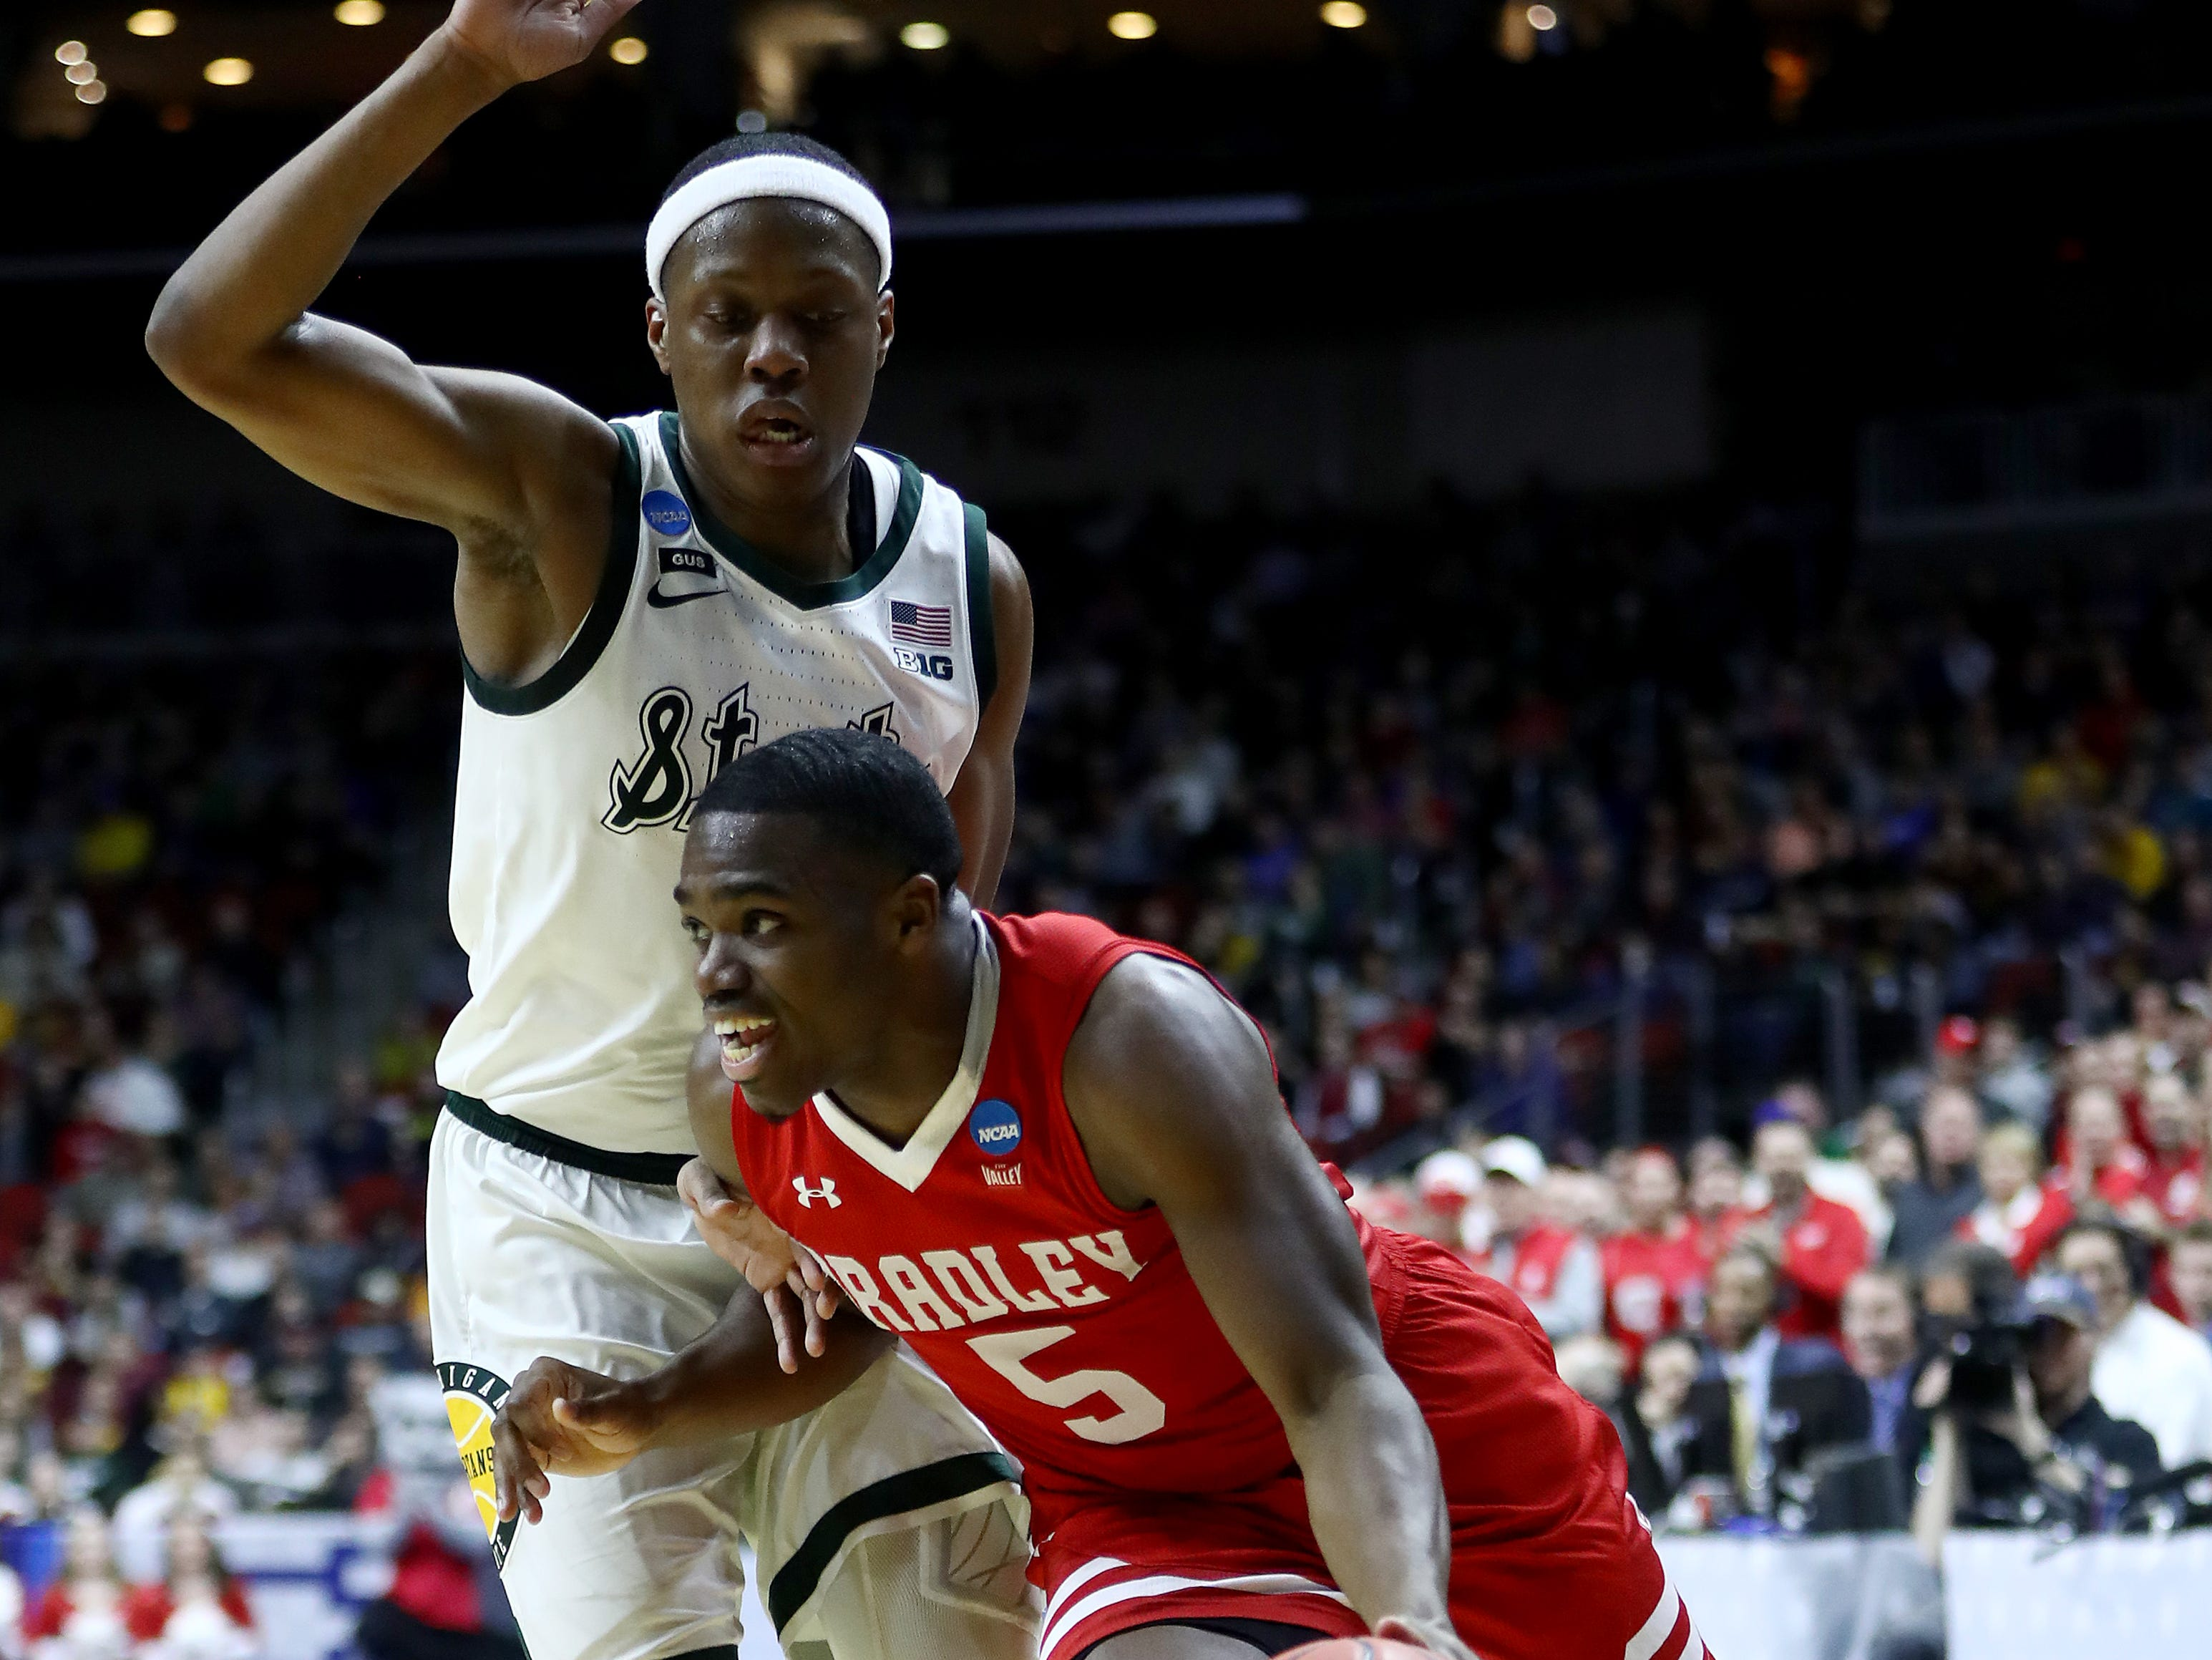 Darrell Brown #5 of the Bradley Braves drives with the ball against Cassius Winston #5 of the Michigan State Spartans during their game in the First Round of the NCAA Basketball Tournament at Wells Fargo Arena on March 21, 2019 in Des Moines, Iowa.